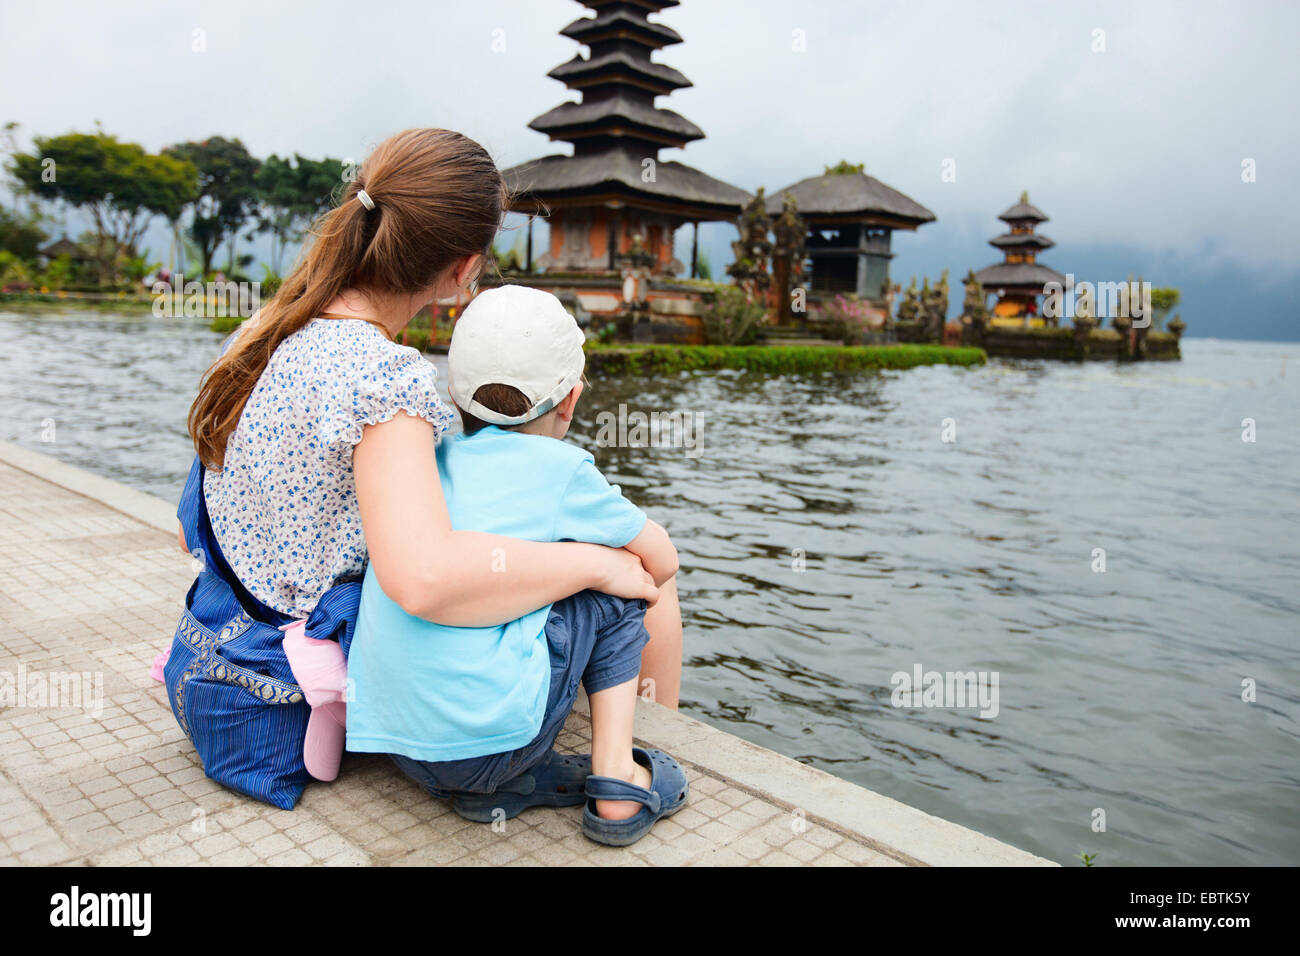 family enjoying views of beautiful Bali water temple at Bratan lake, Indonesia, Bali - Stock Image